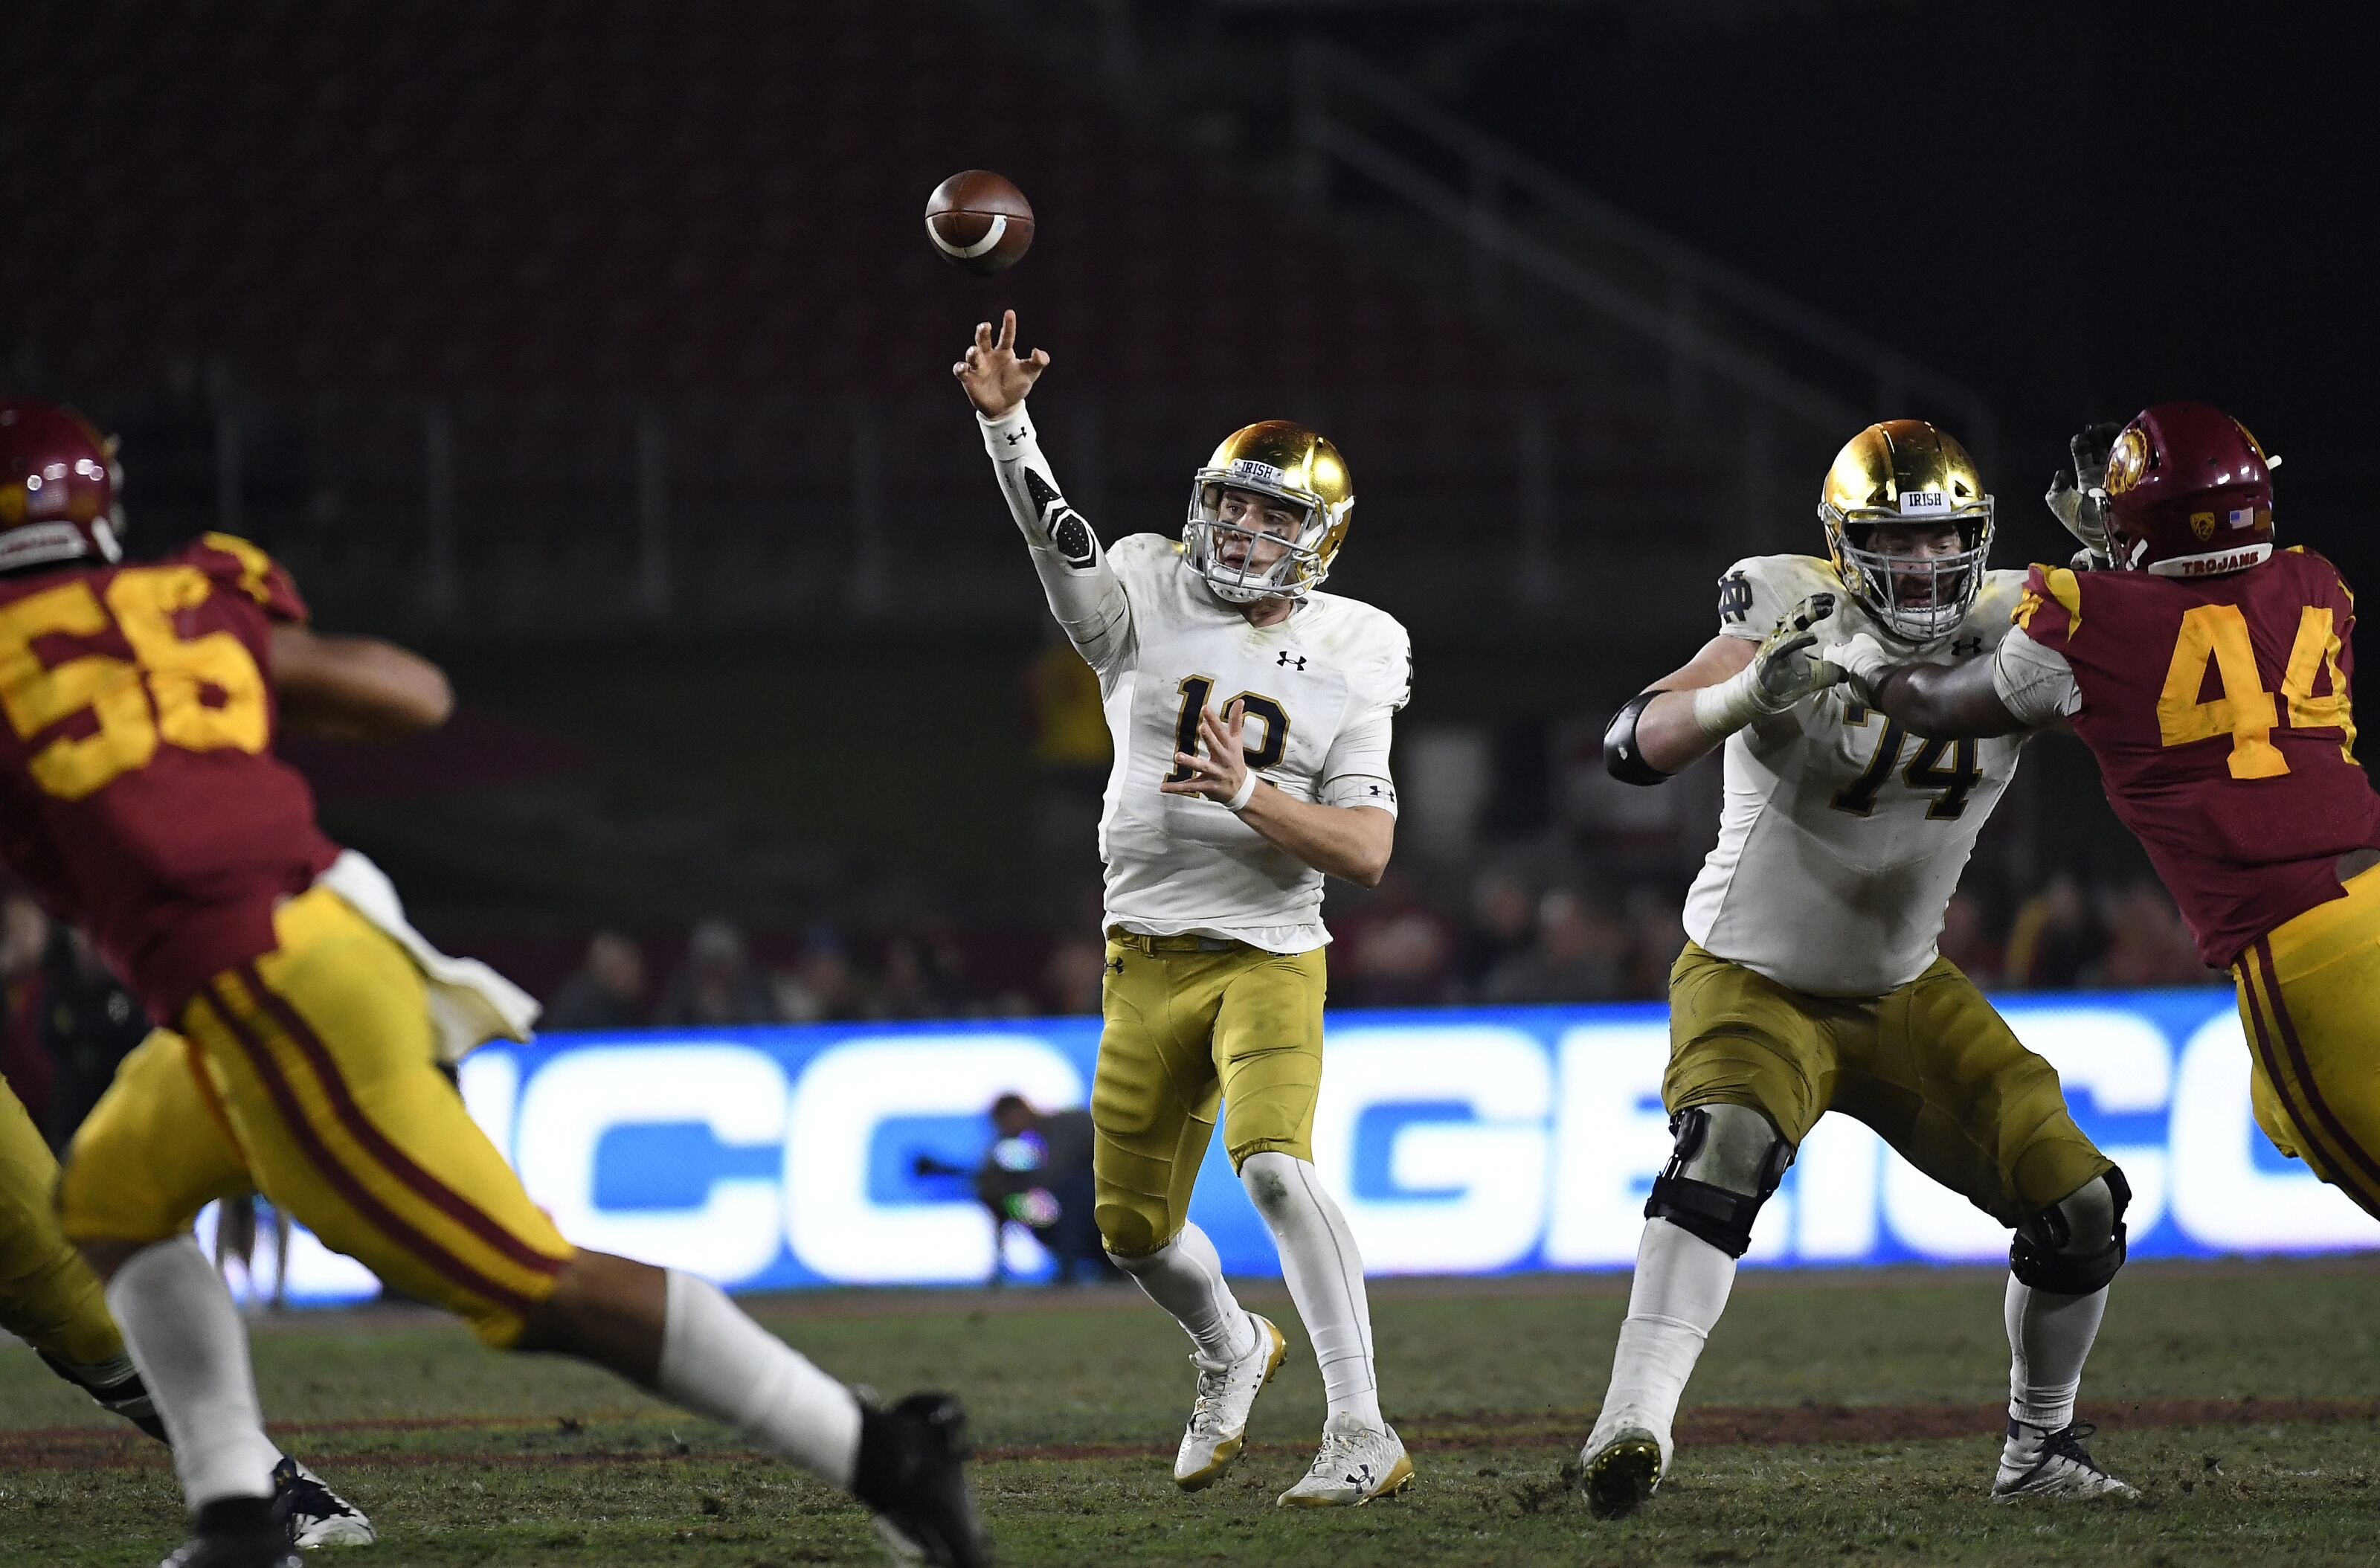 Notre Dame Football: Spring Game shows Ian Book's development on track